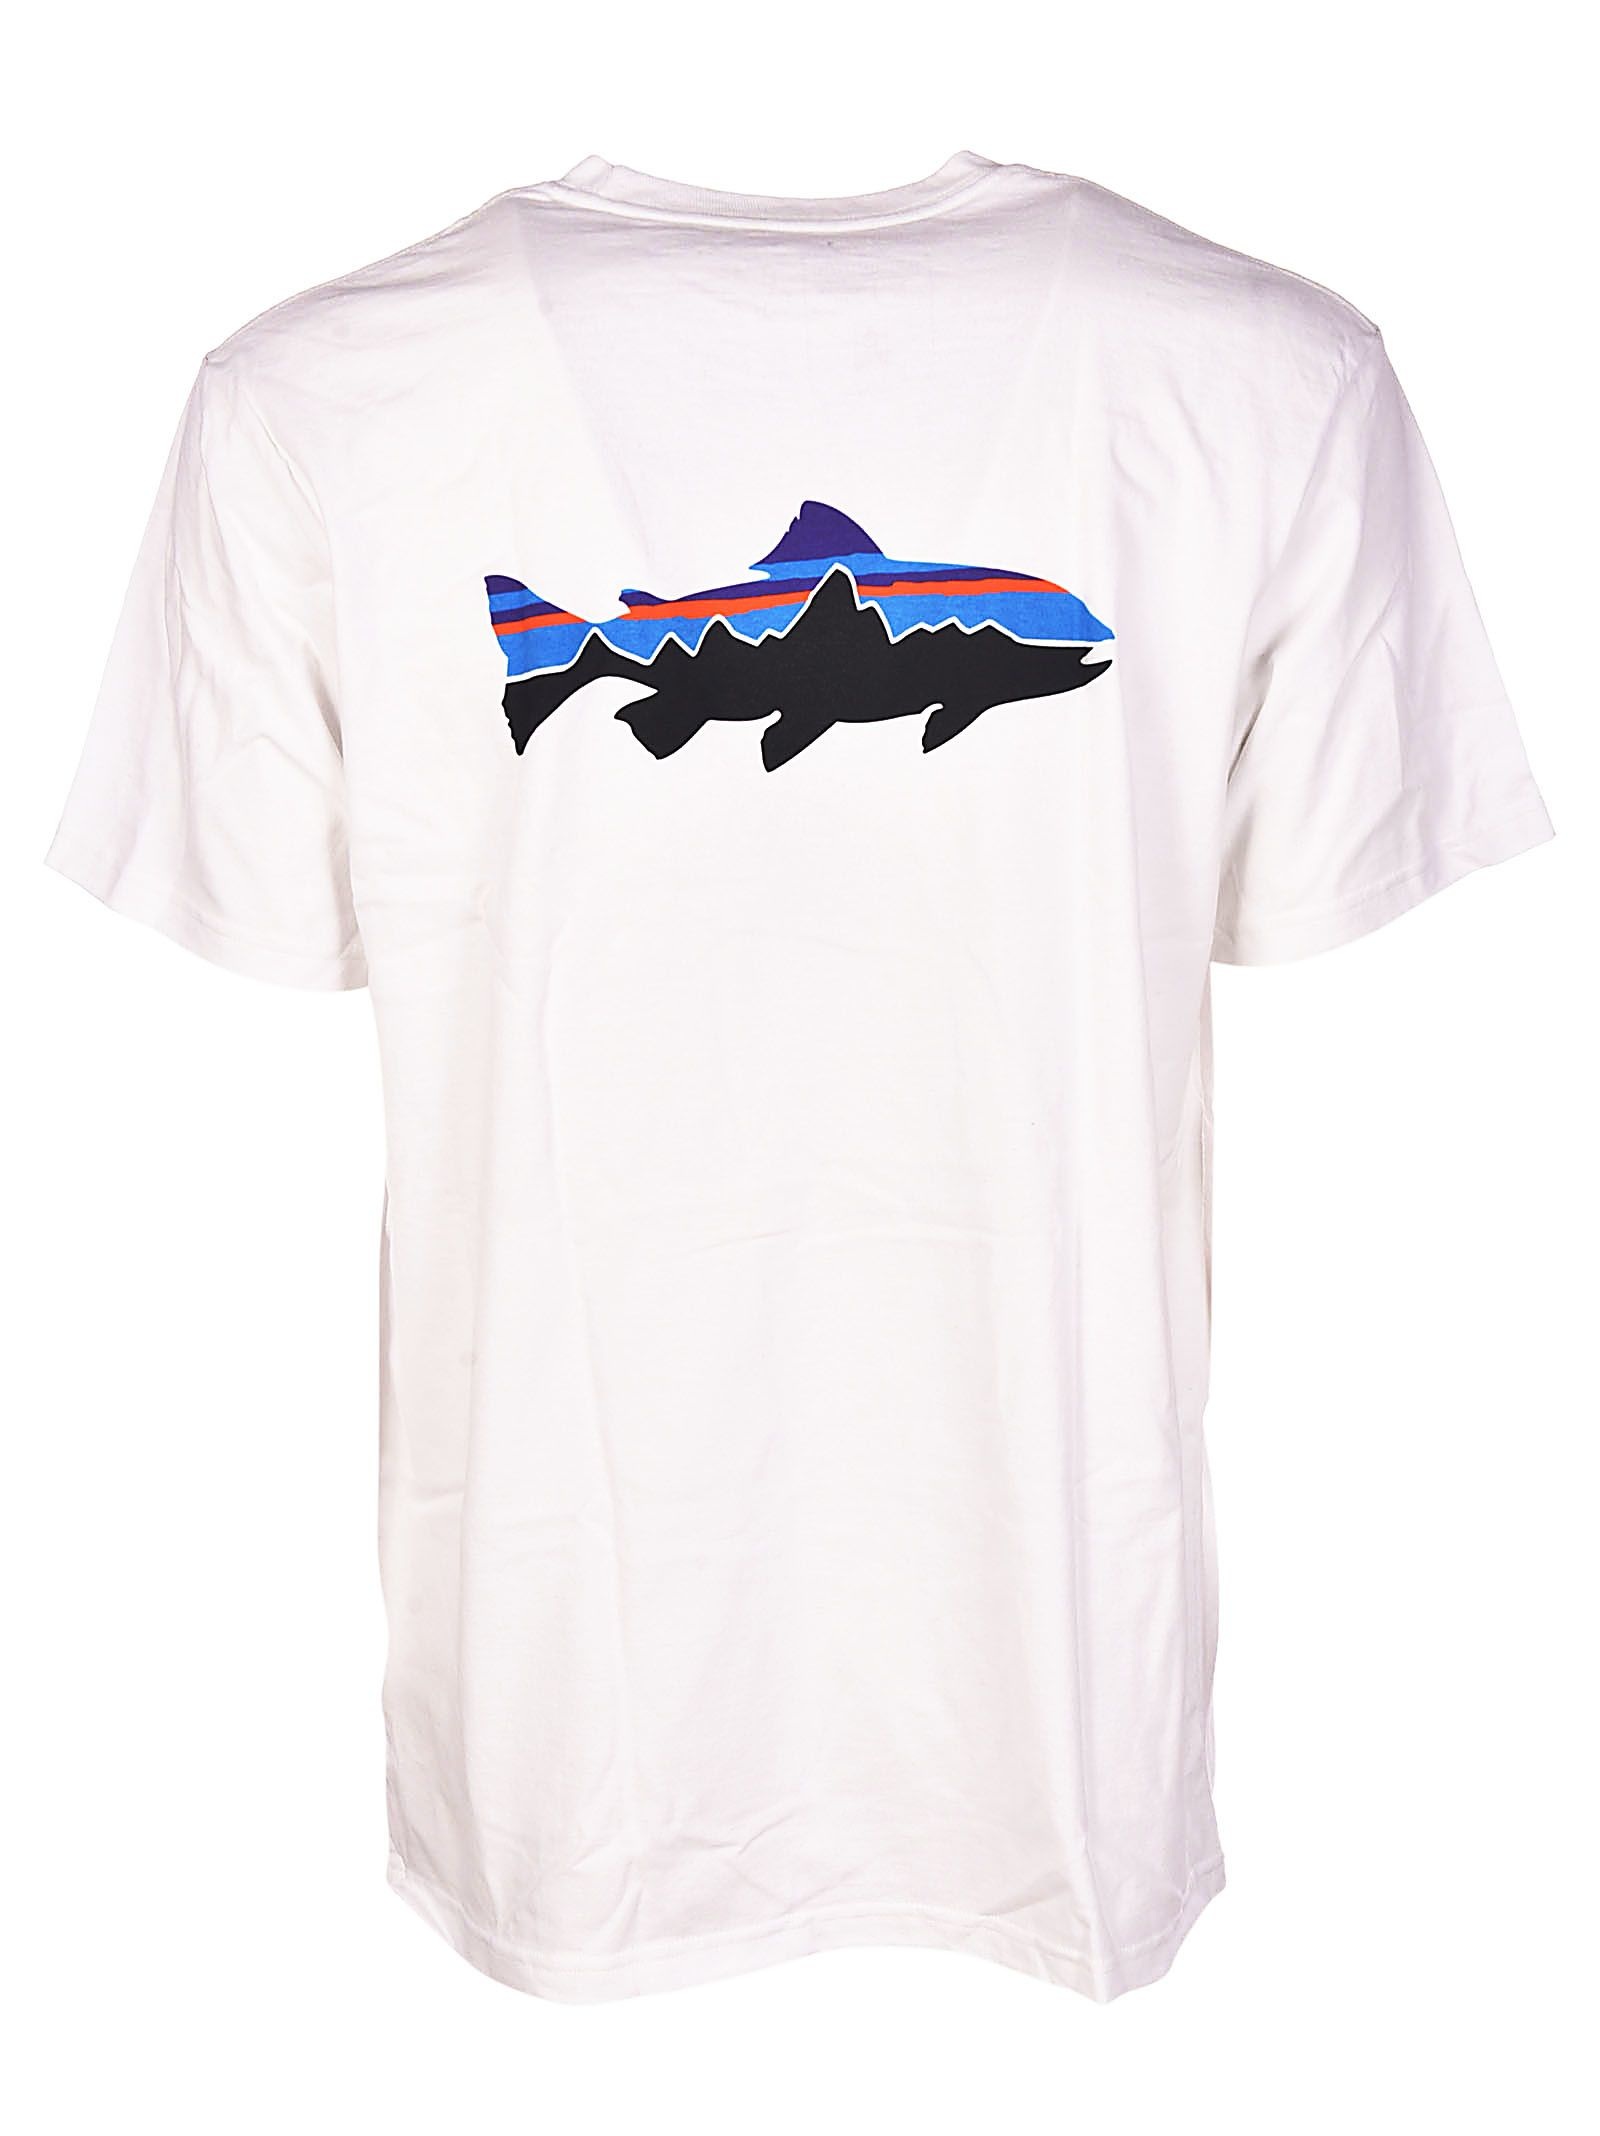 Discount 2018 Cheap Wholesale Price FITZ ROY TROUT COTTON T-SHIRT - TOPWEAR - T-shirts Patagonia Cheap Sale 2018 Unisex With Paypal Sale Online Sale Best Seller Q1h8X